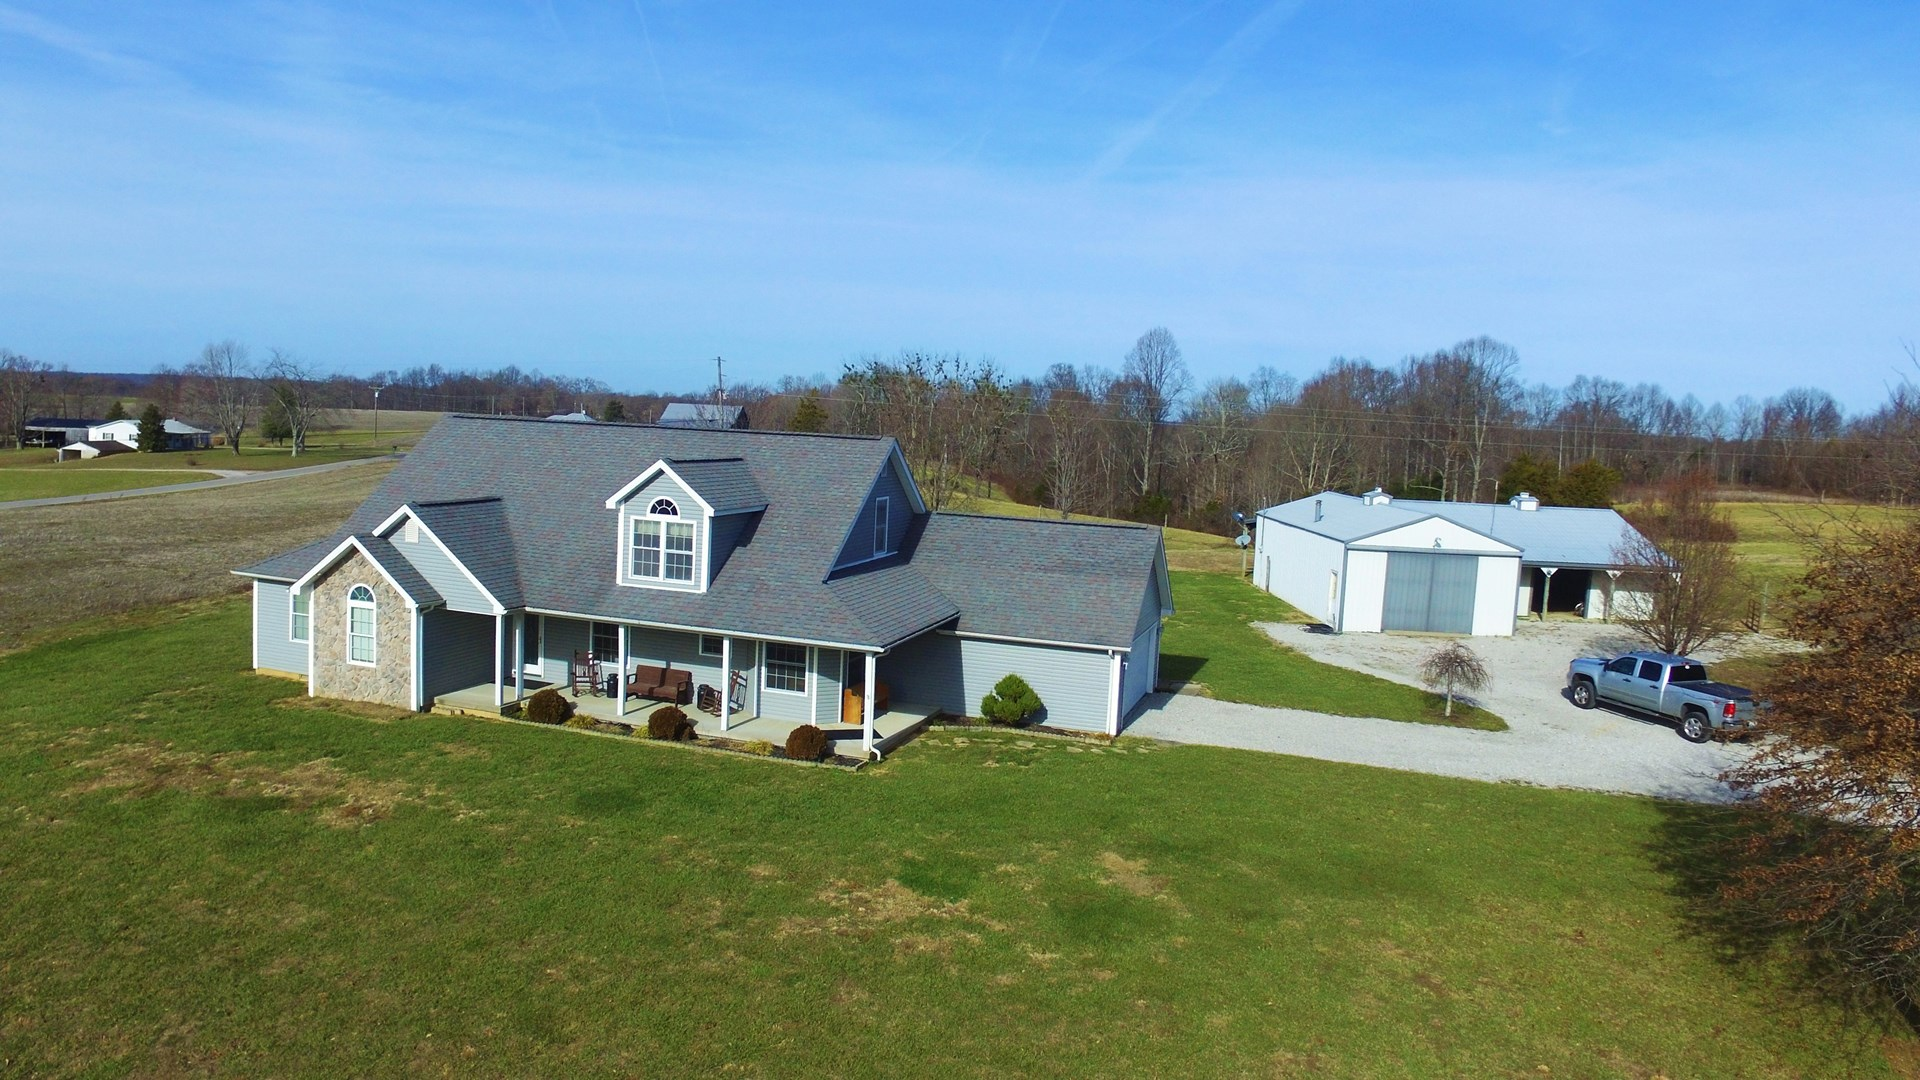 SPACIOUS COUNTRY HOME-ATTACHED GARAGE-OUTBLDG.-CASEY CO. KY.